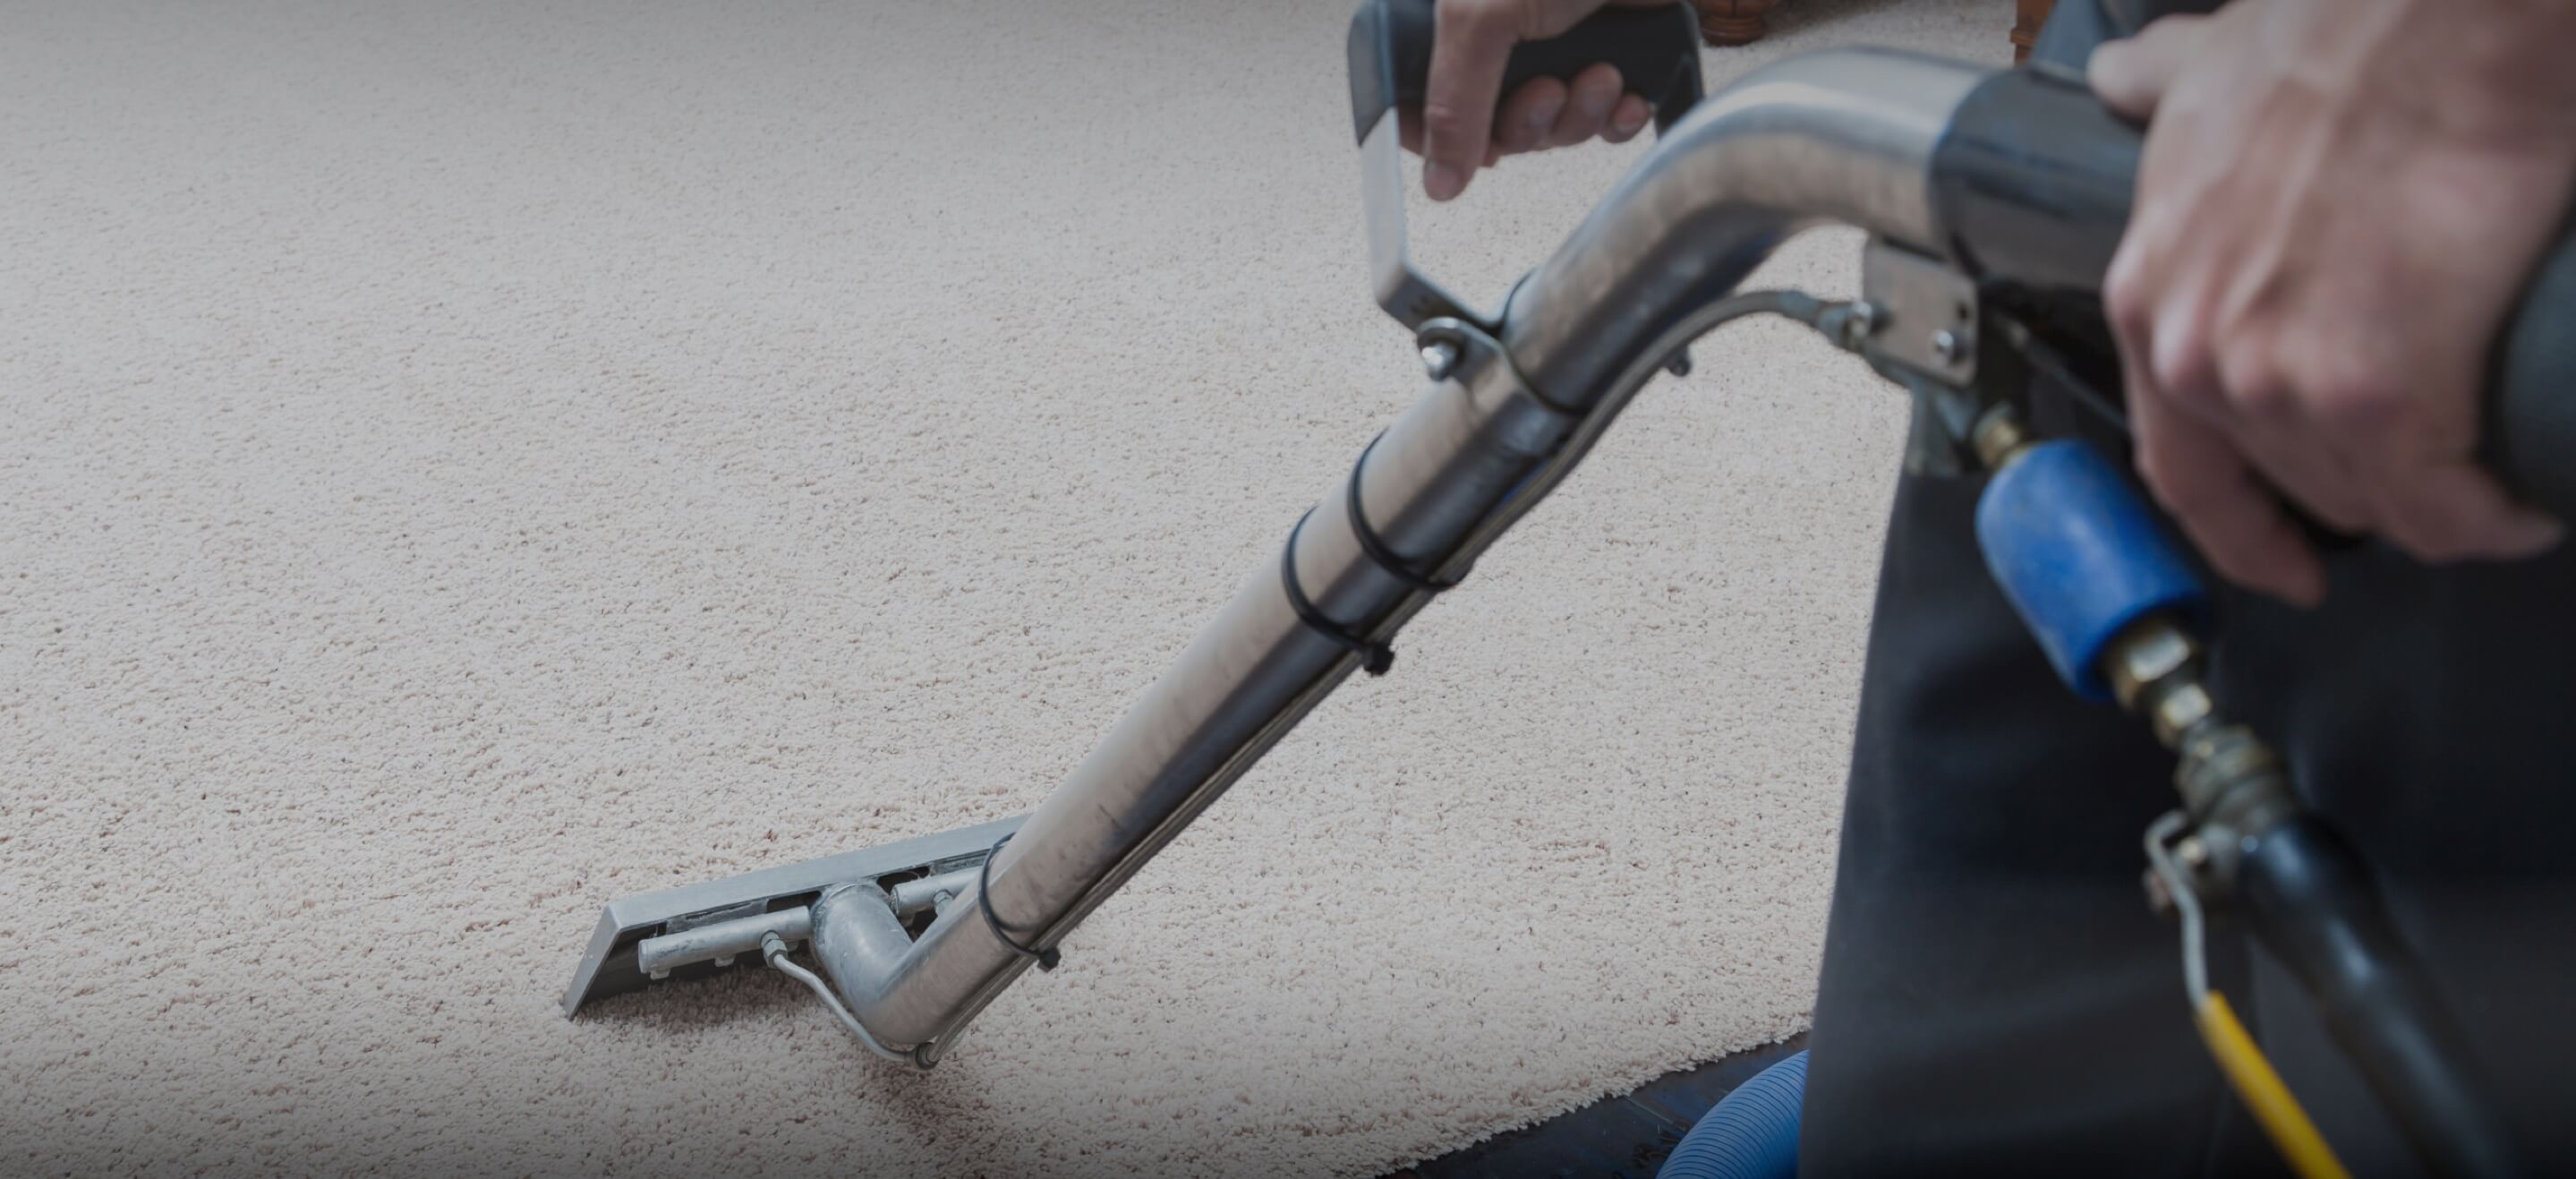 Carpet Cleaning Services in Medina